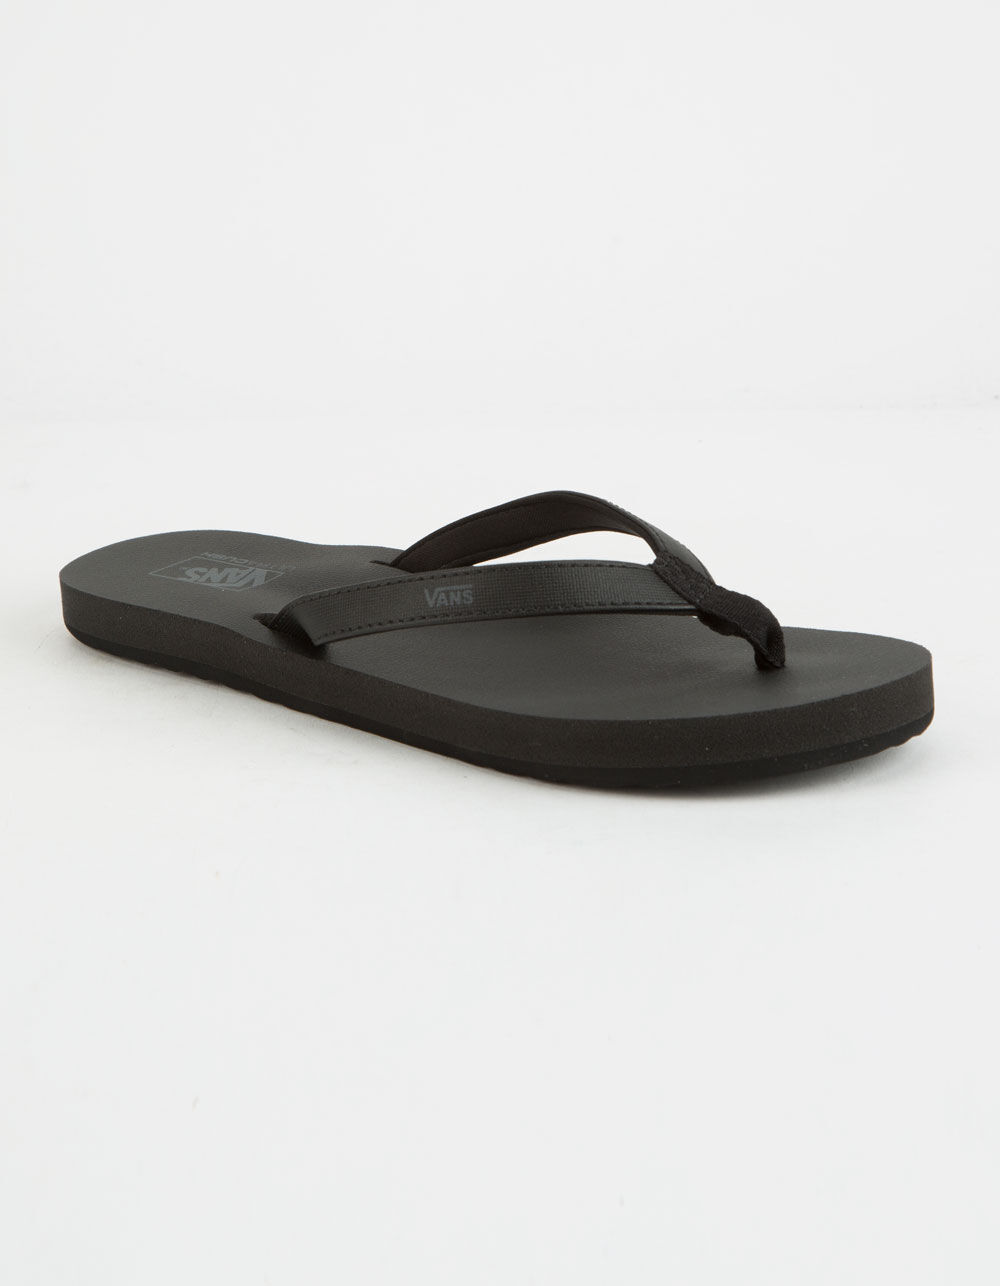 VANS Soft-Top Black Sandals